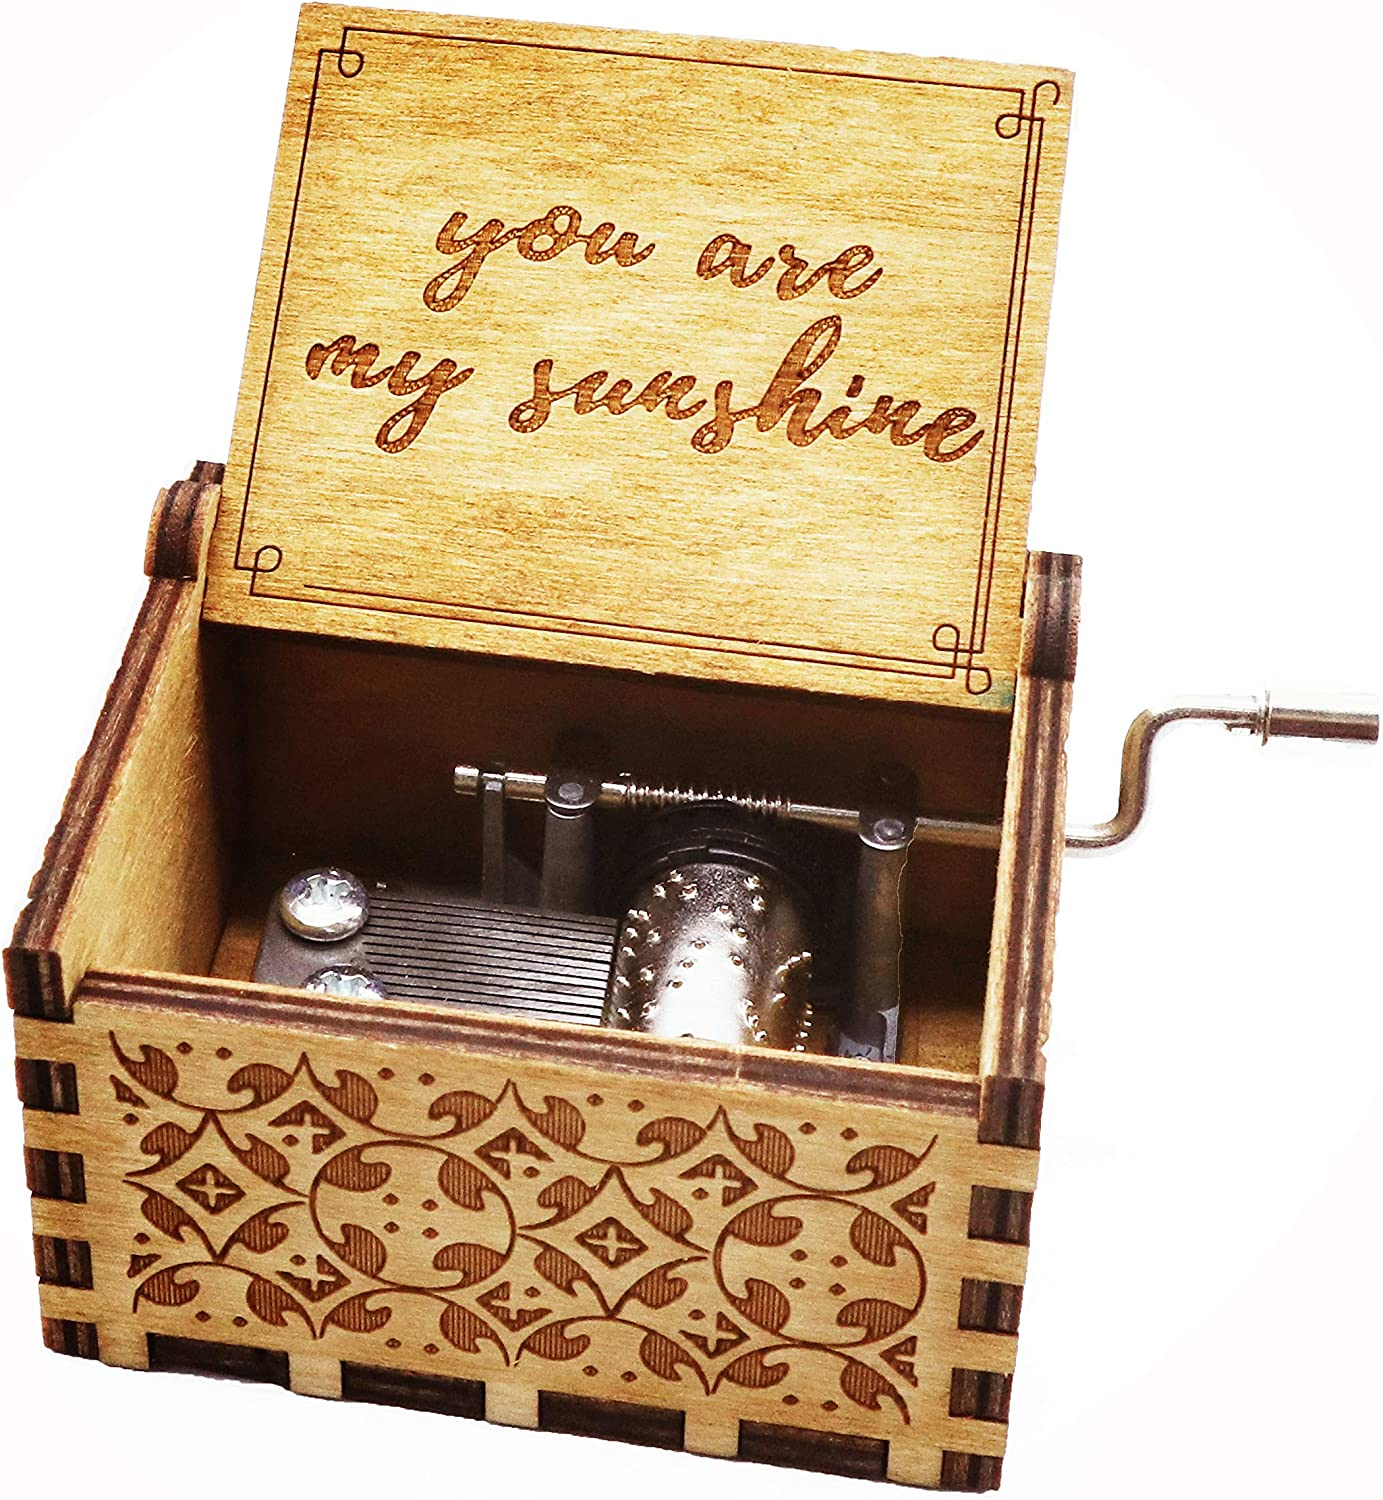 HOSALA Personalizable Imagine The Beatles Classical Music Box Handmade Laser Engraved Vintage Wooden Hand Crank Musical Box Gifts for Wedding//Birthday//Christmas//Valentines Day Imagine B07DVPQ13M